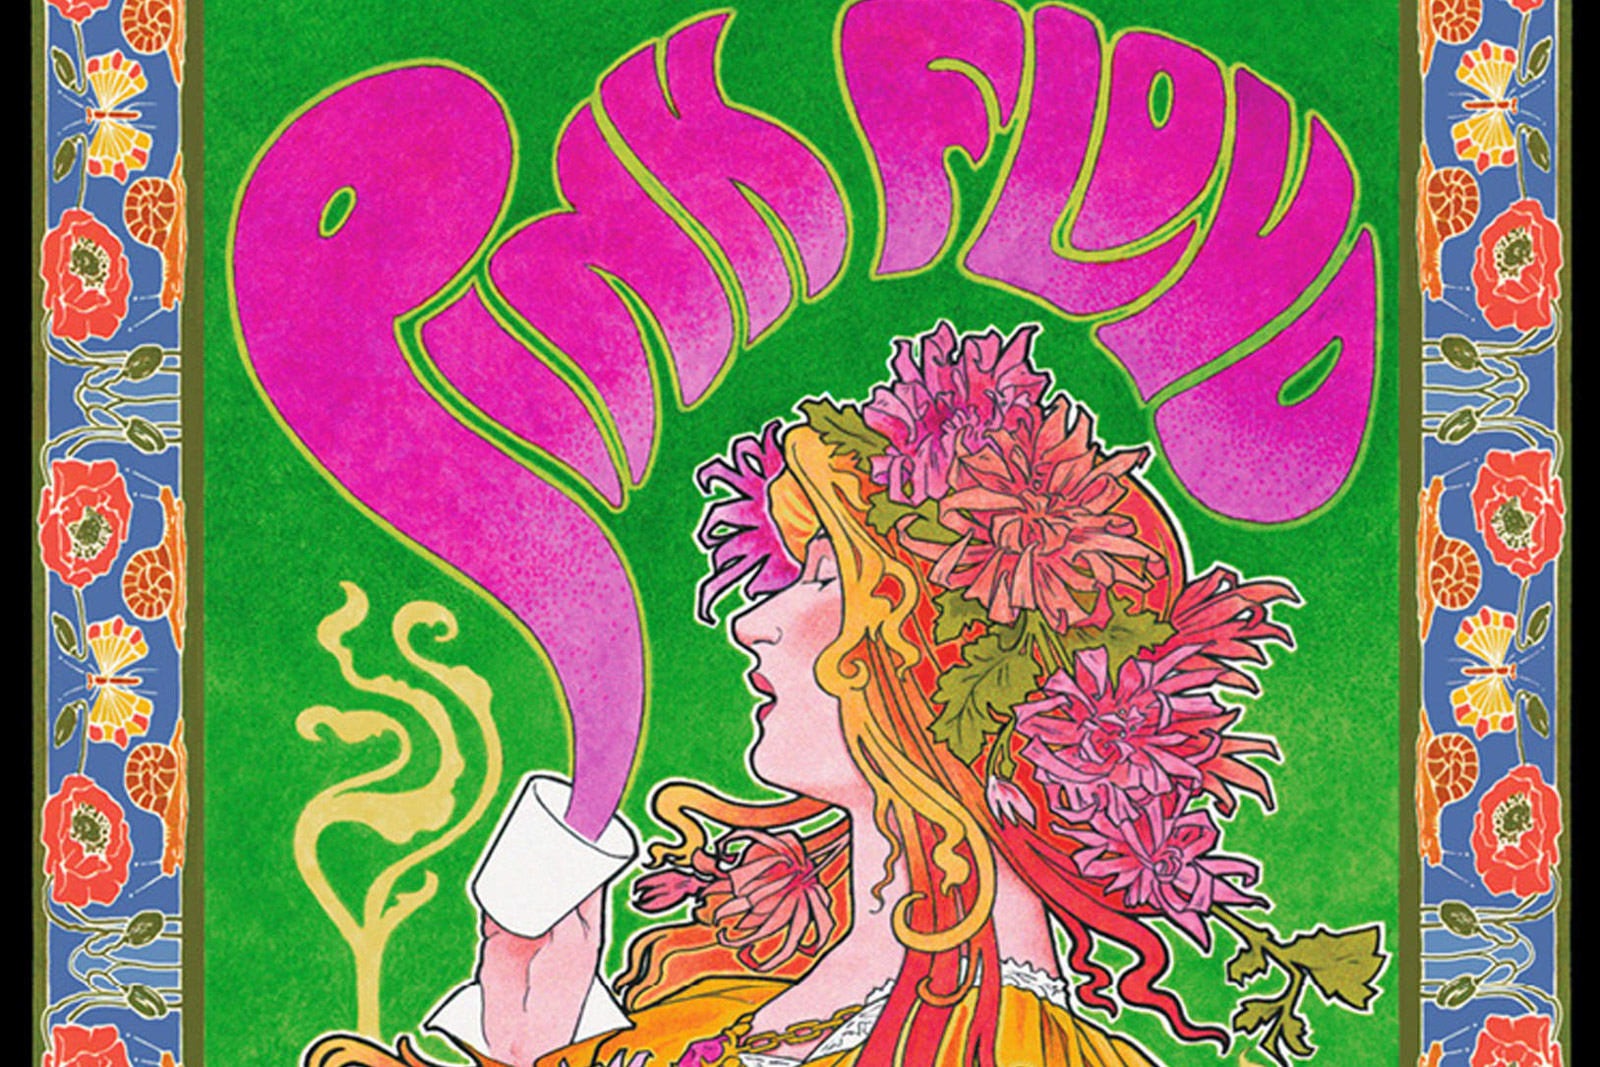 Meet the B.C. Artist Behind Some of the Grooviest Psychedelic Concert Posters Of All Time